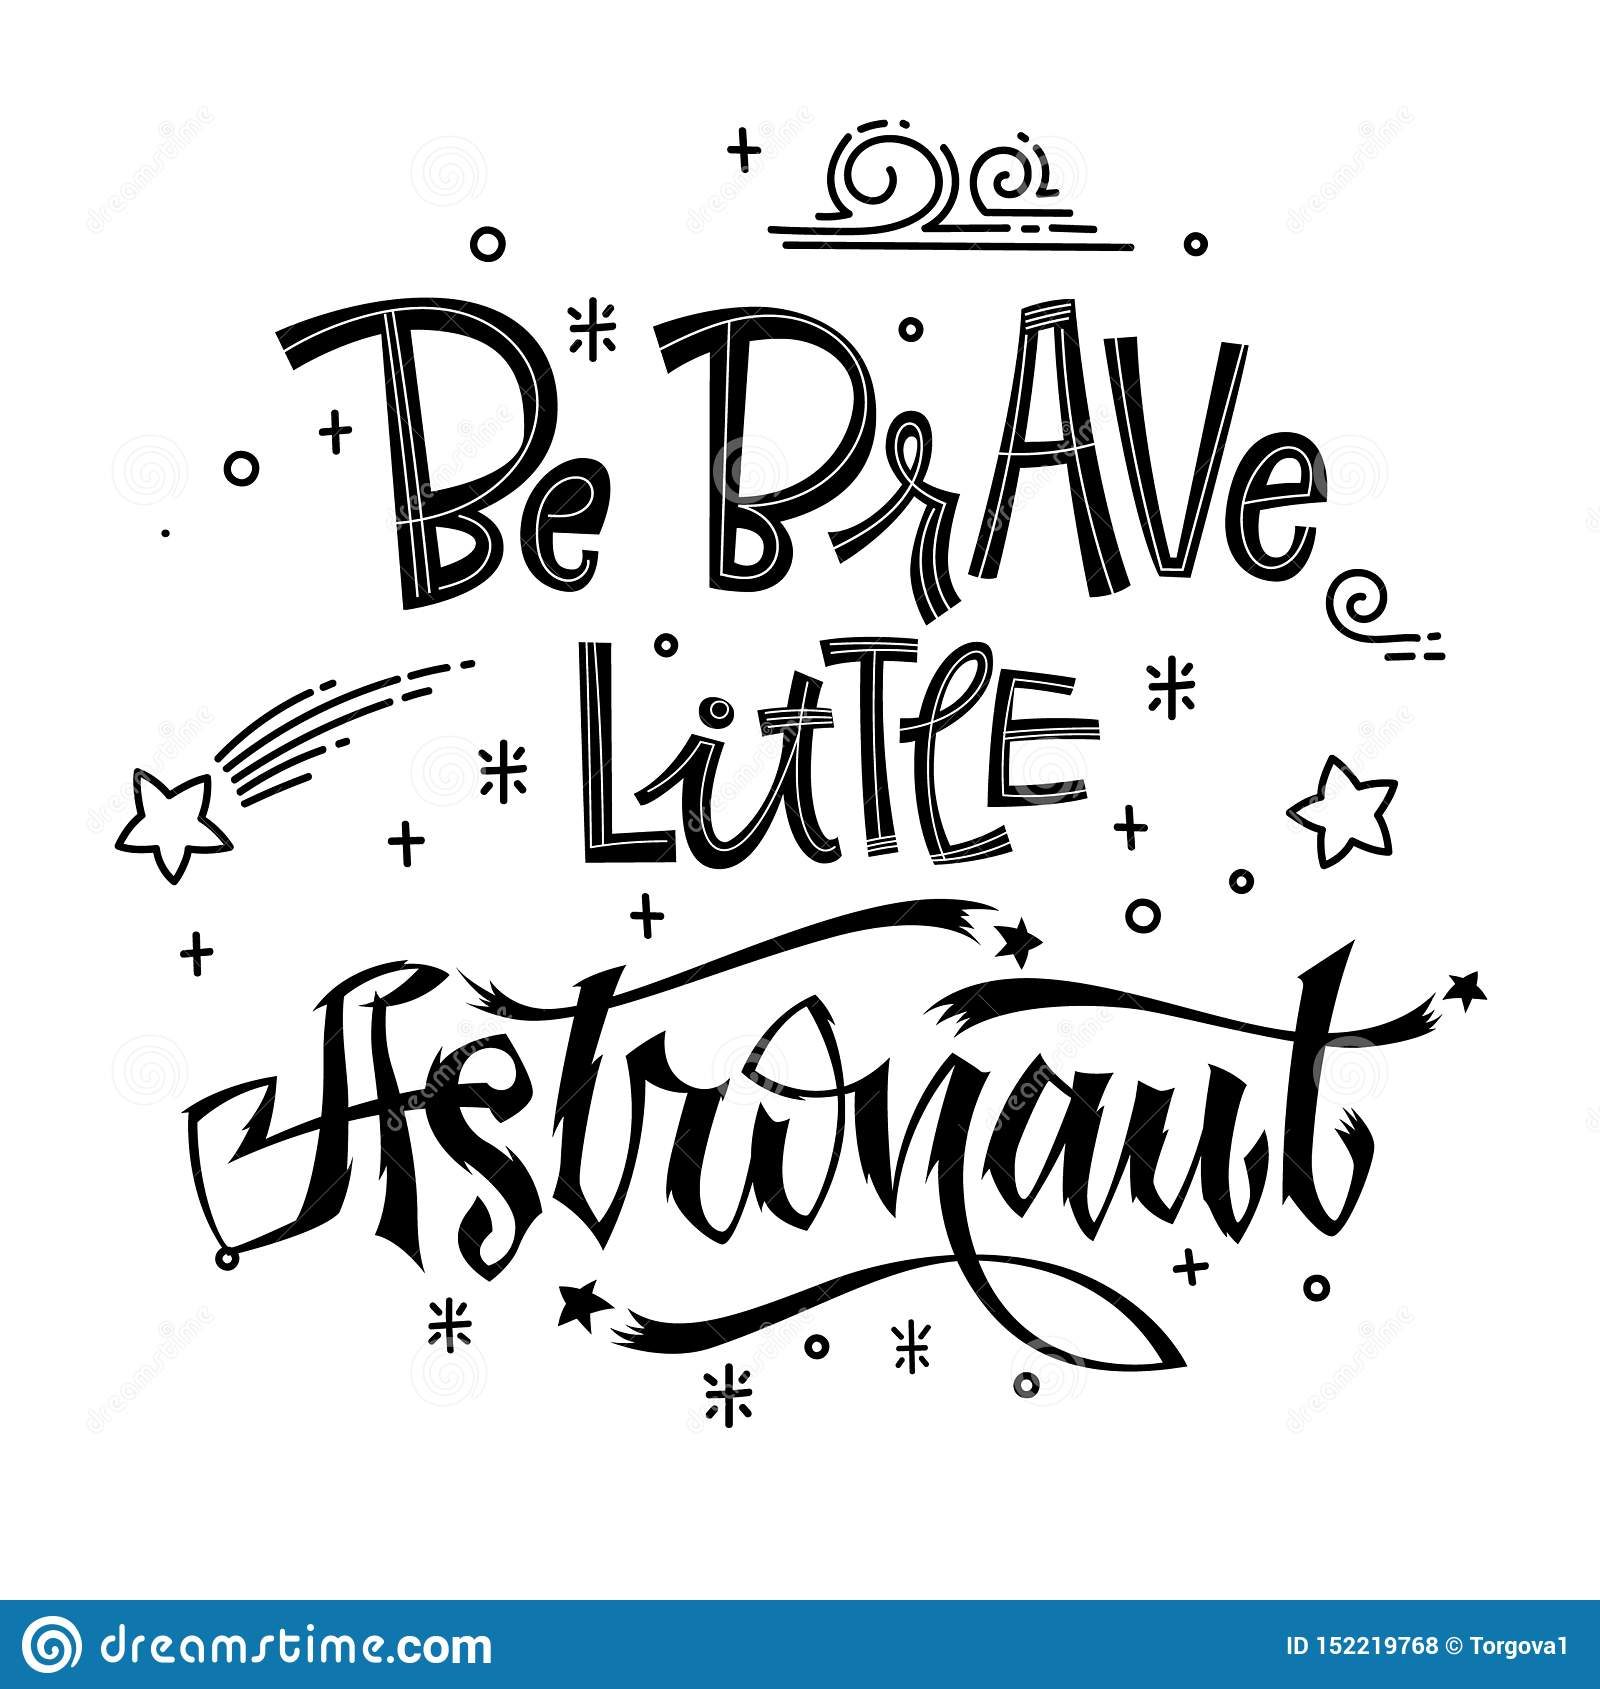 Be Brave Little Astronaut quote. Baby shower hand drawn lettering logo phrase